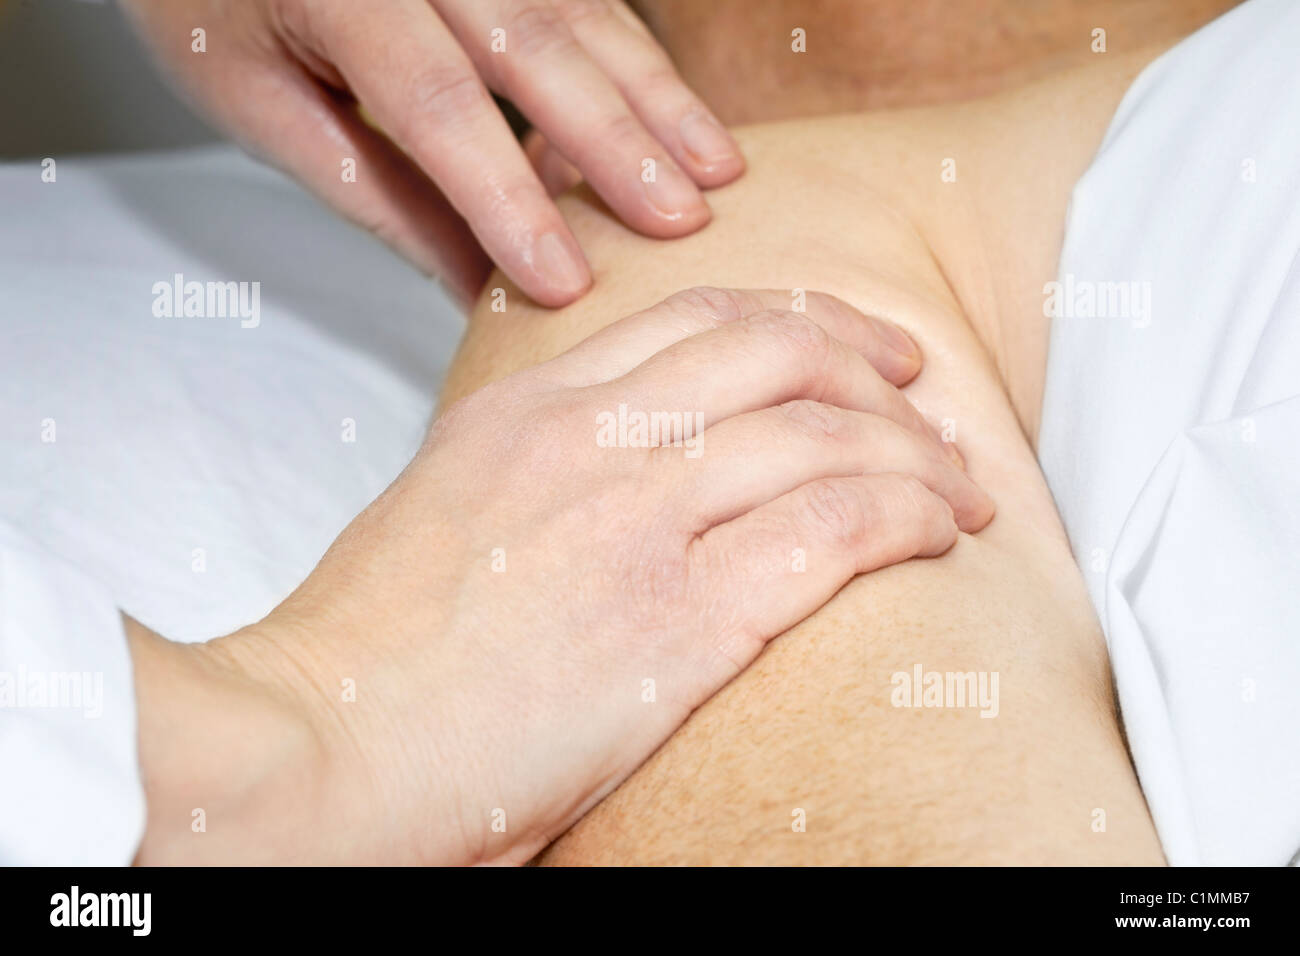 Closeup of female hands massaging arm and shoulder Stock Photo